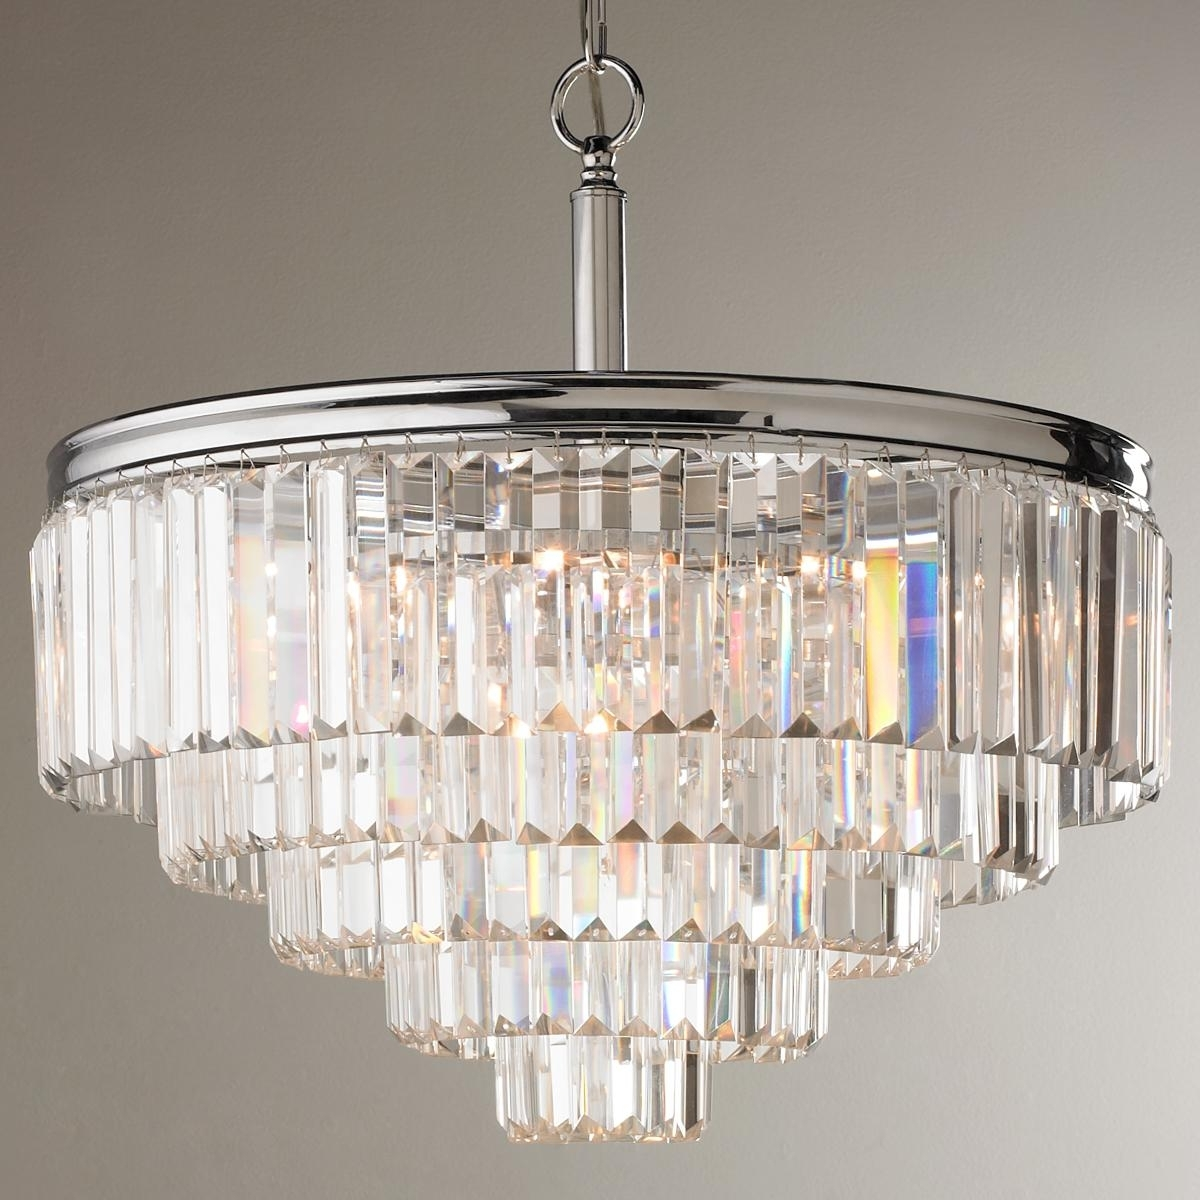 Convertible Throughout Modern Glass Chandeliers (View 4 of 15)